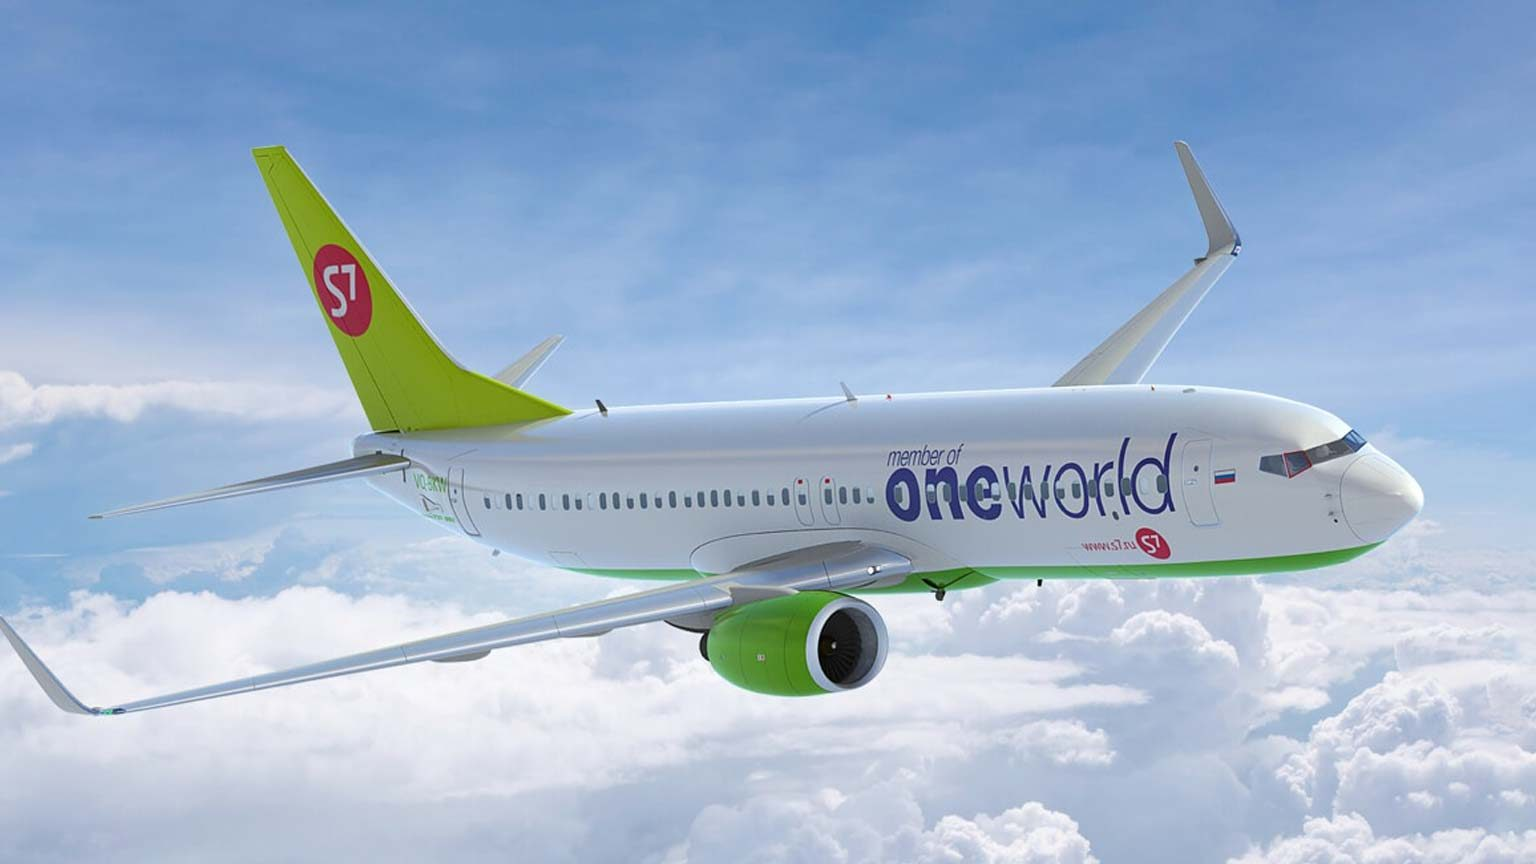 Oneworld Alliance S7 aircraft